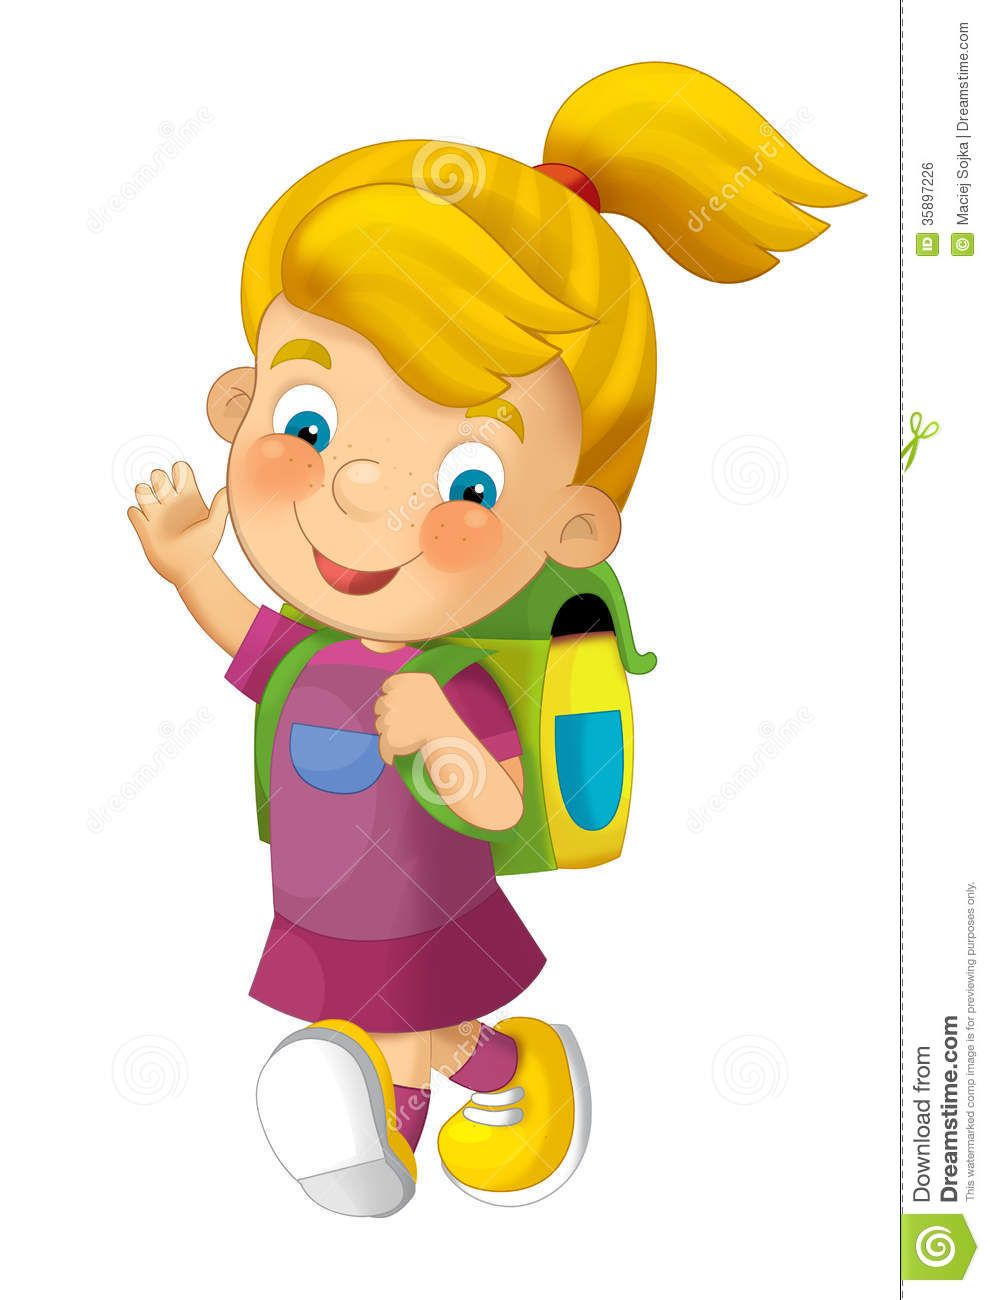 cartoon child going to school illustration for children royalty free stock image image - Children Cartoon Pictures